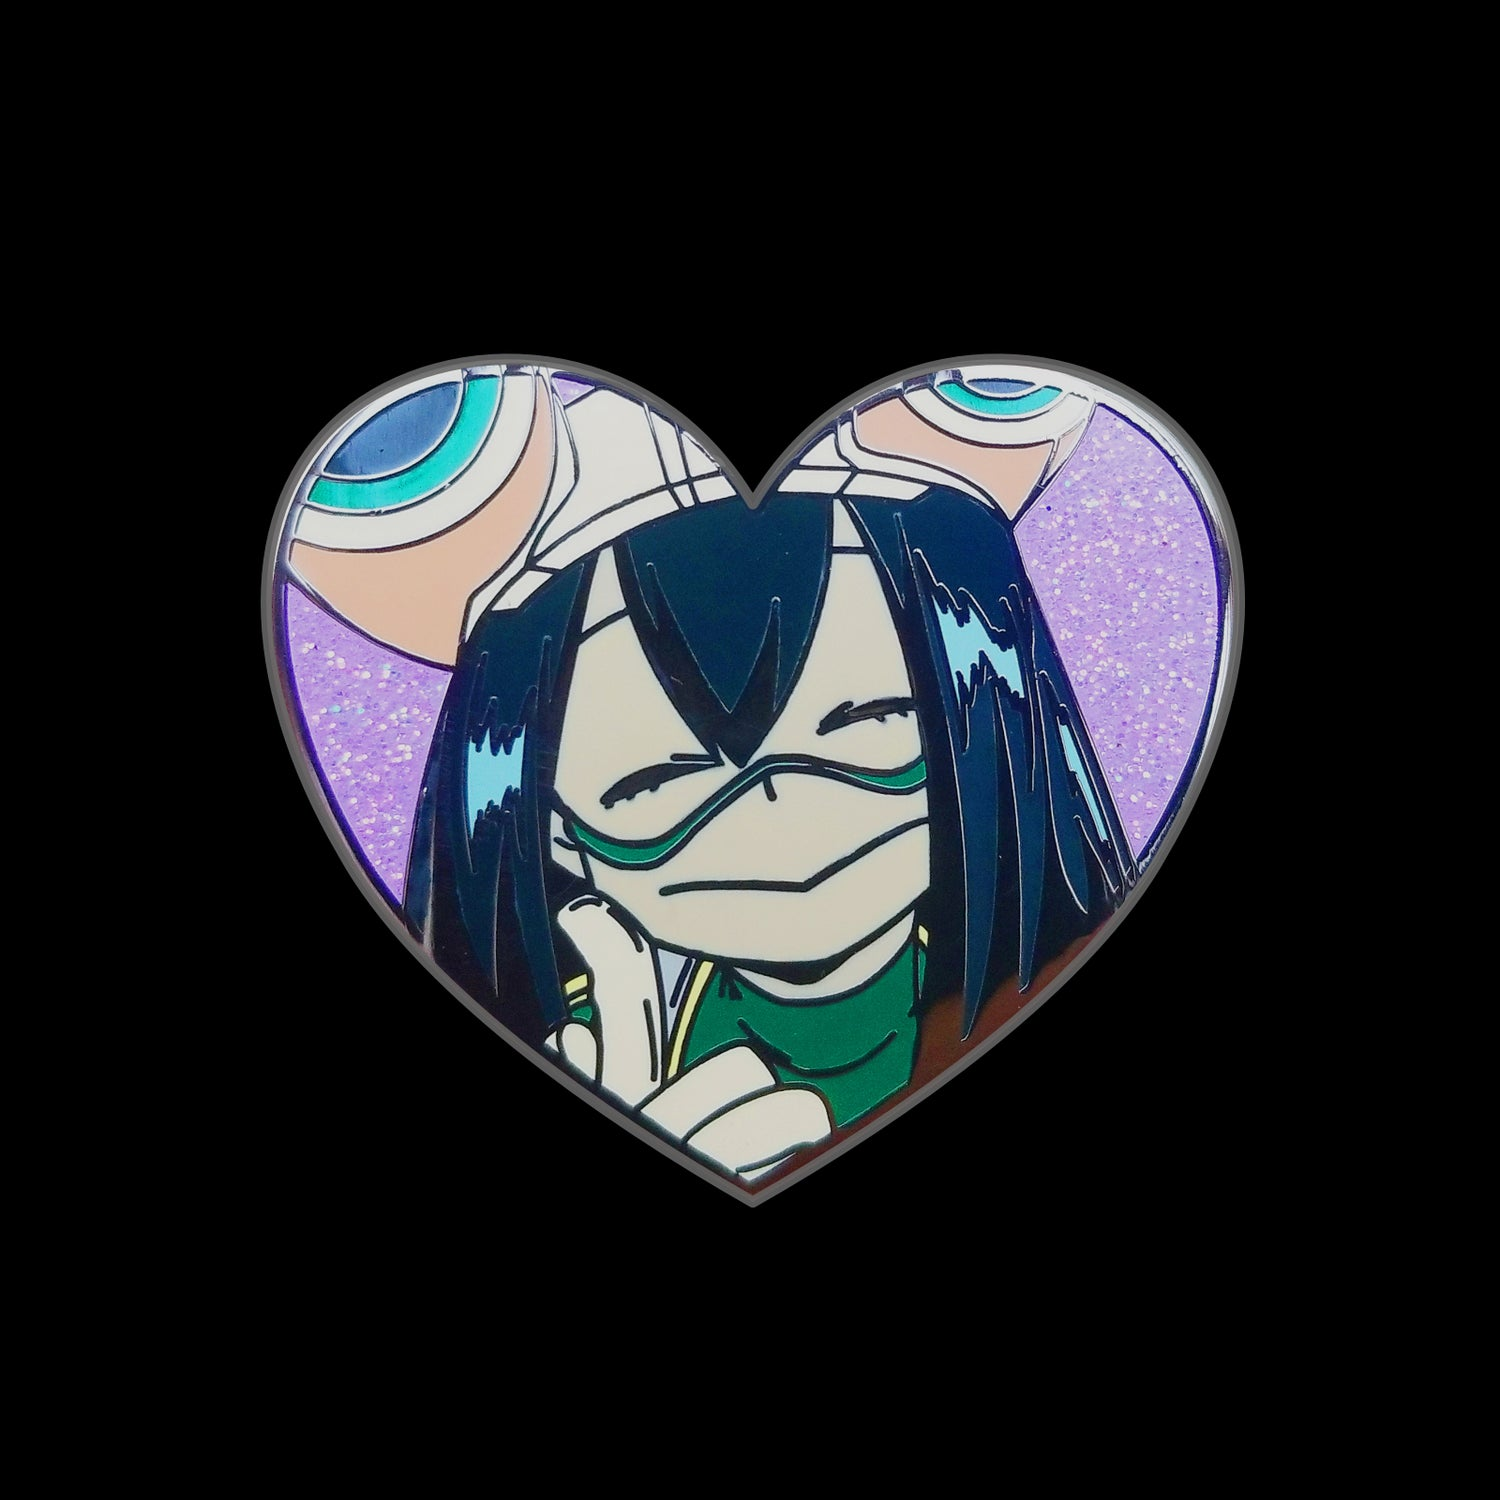 Image of My Hero Tsuyu